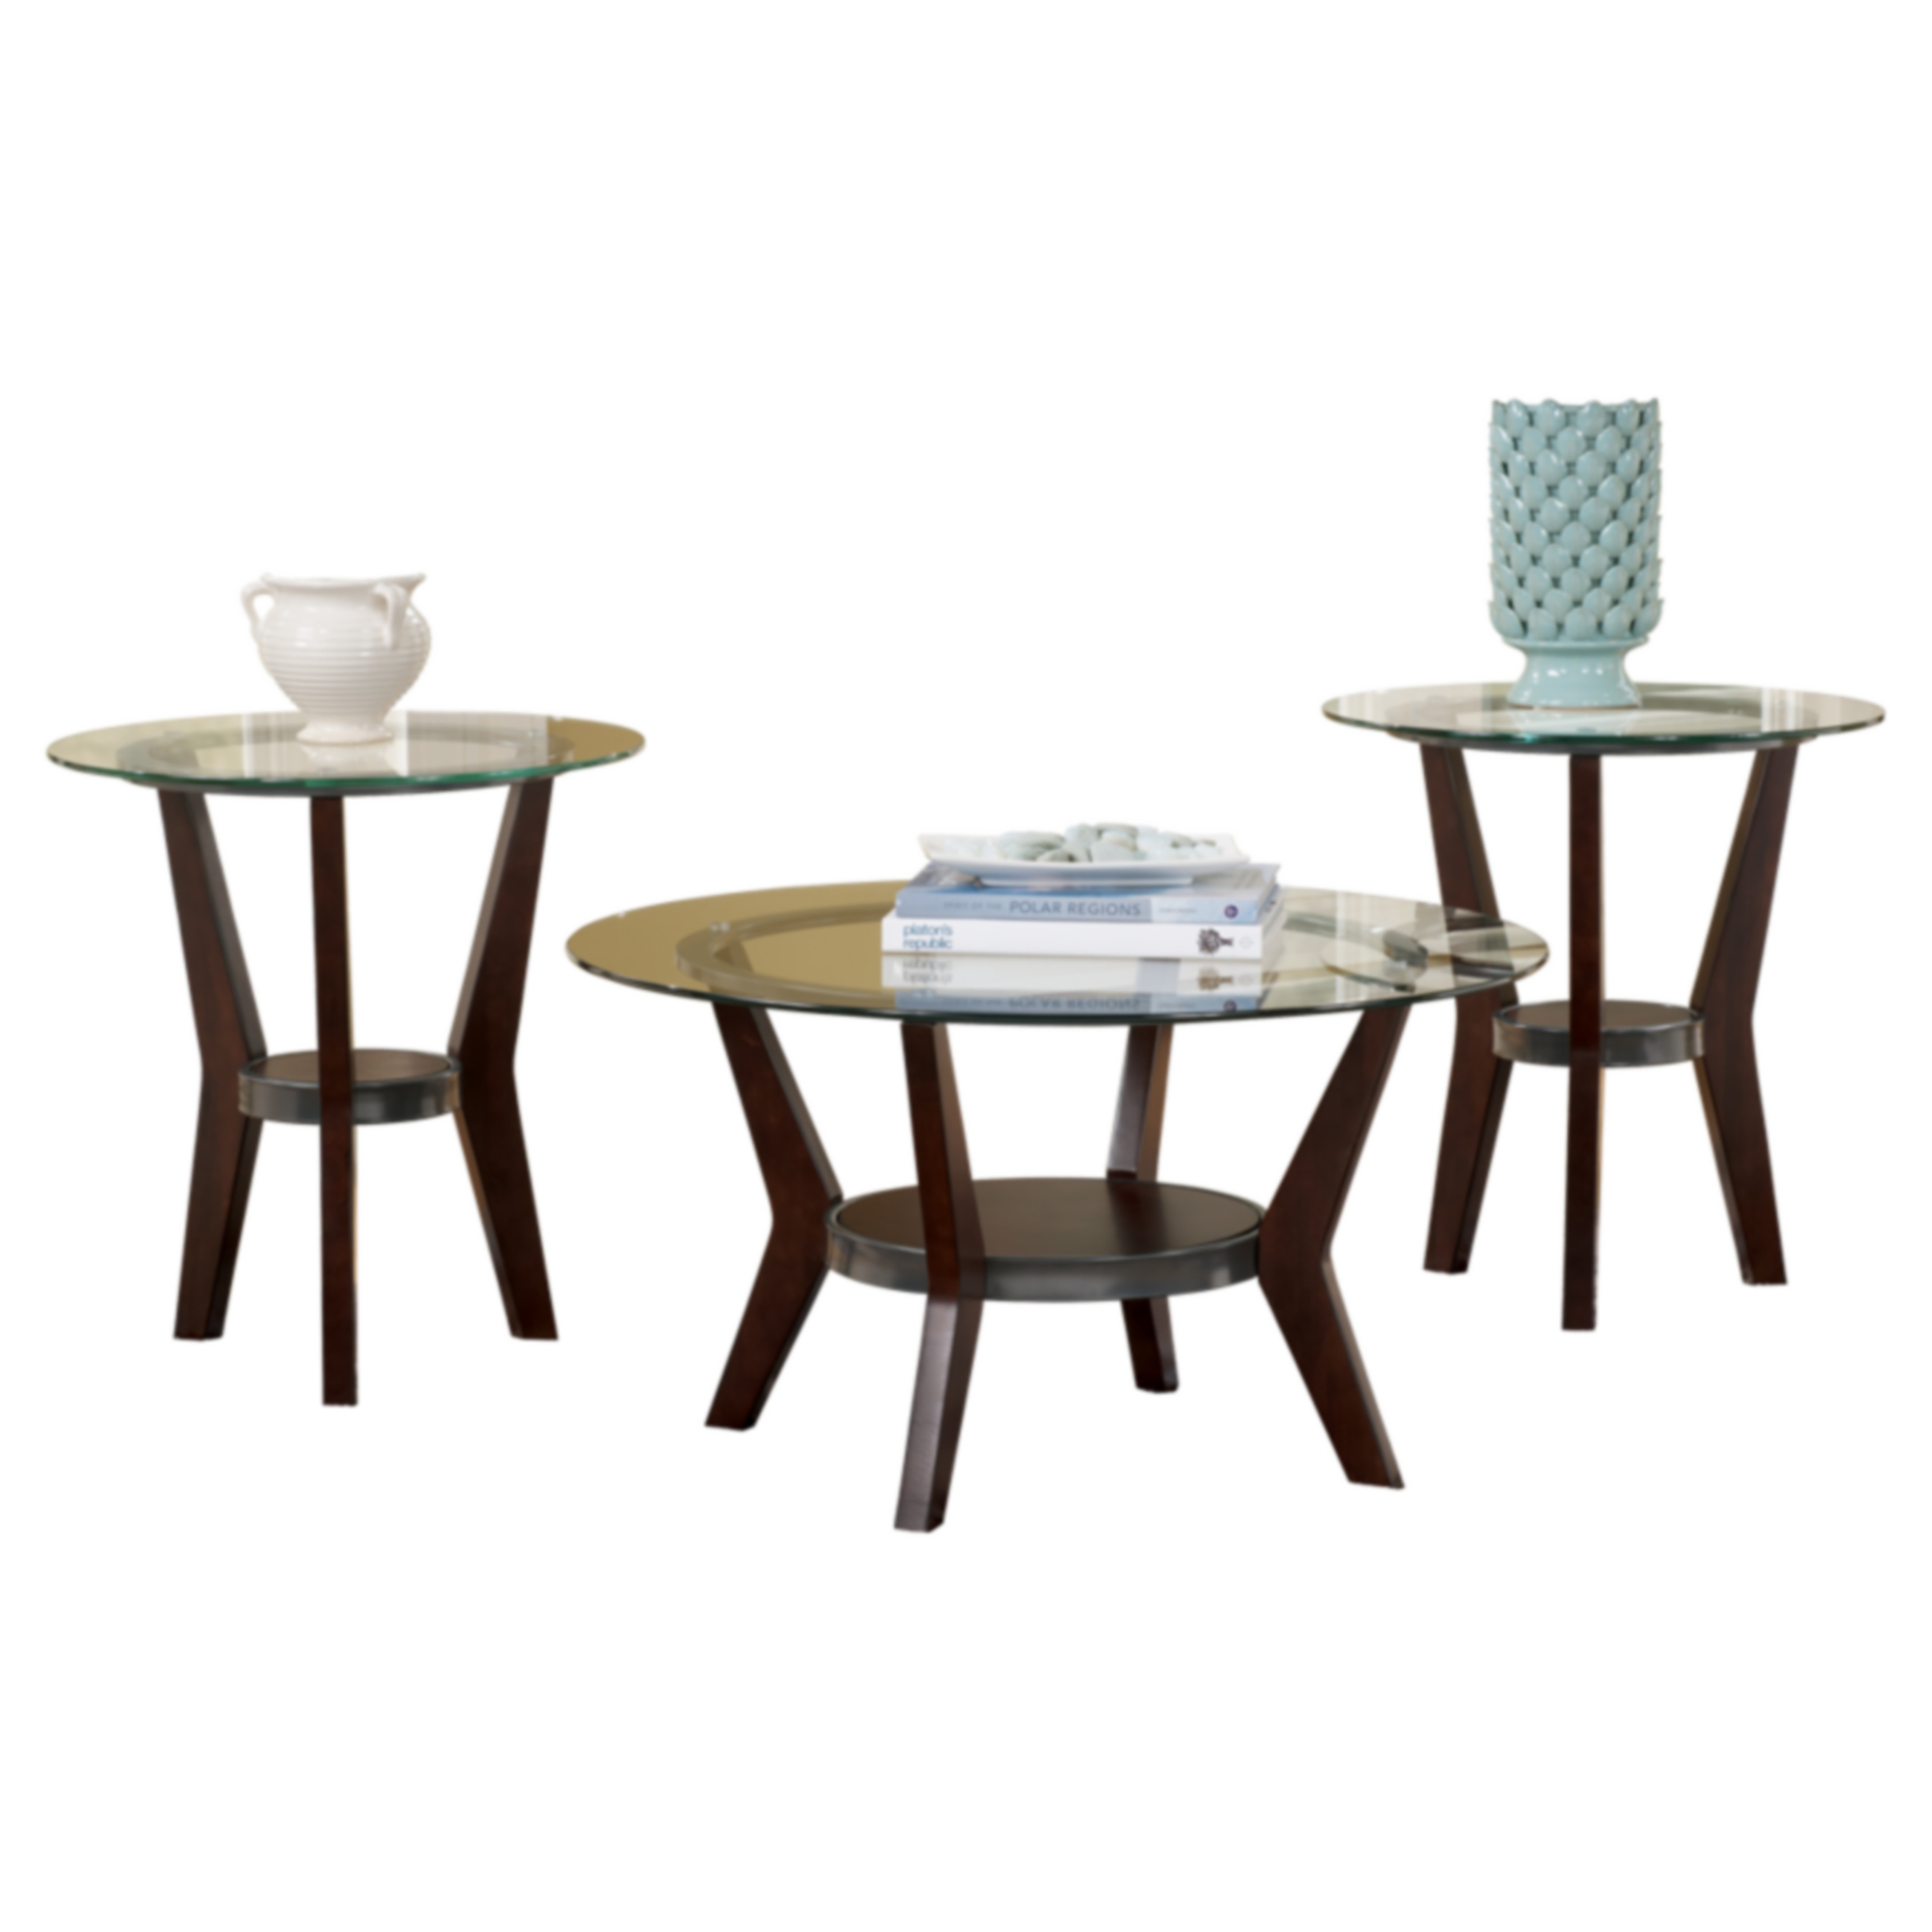 Steve Silver Emerson Rectangle Glass Top 3-Piece Coffee Table Set - Black | Hayneedle  sc 1 st  Hayneedle & Steve Silver Emerson Rectangle Glass Top 3-Piece Coffee Table Set ...